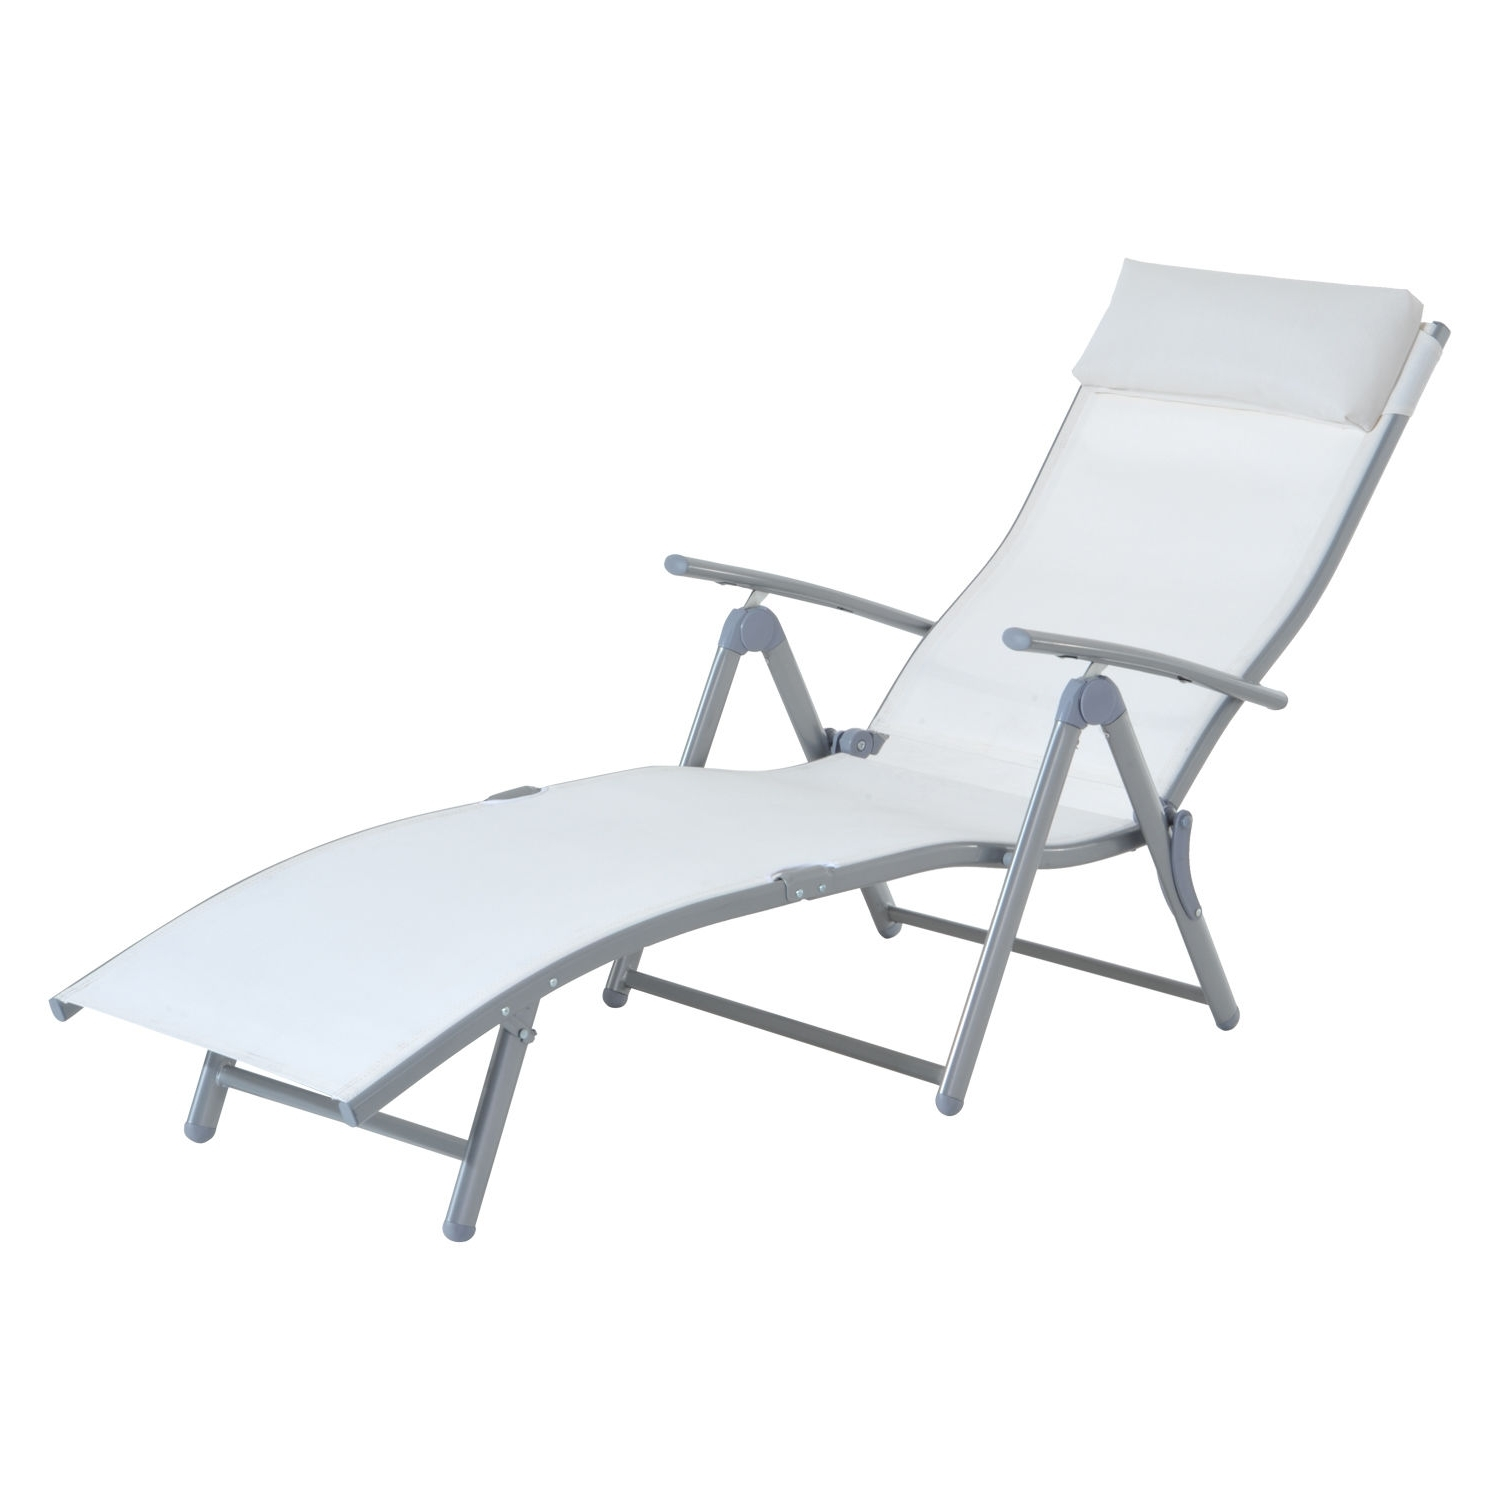 Vinyl Chaise Lounge Chairs Throughout Popular Outdoor : Lowes Chaise Lounge Indoor Outdoor Chaise Lounge Chairs (Gallery 8 of 15)